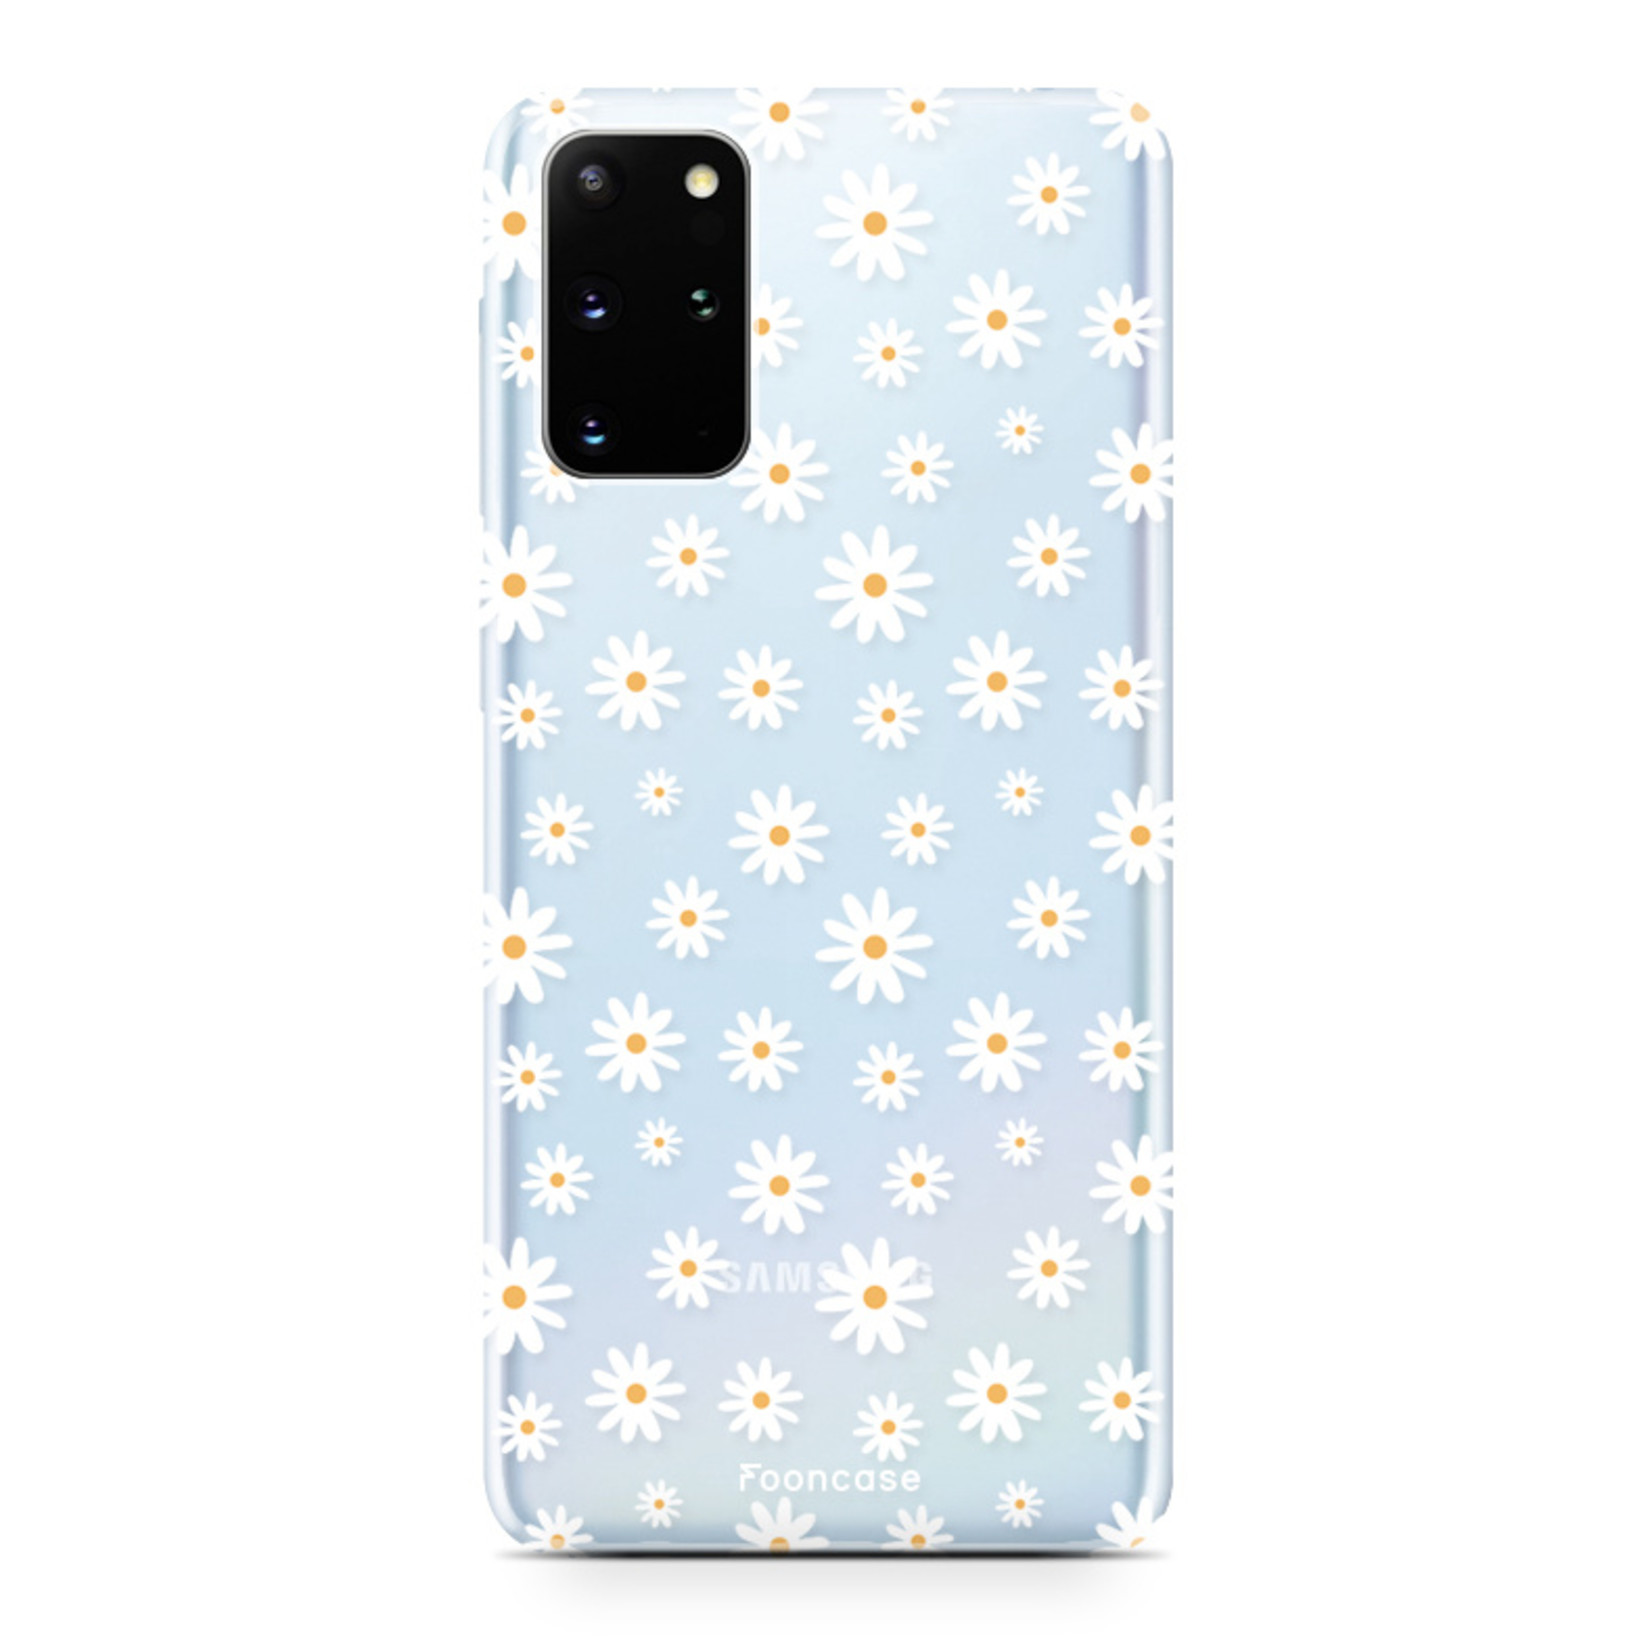 FOONCASE Samsung Galaxy S20 Plus hoesje TPU Soft Case - Back Cover - Madeliefjes